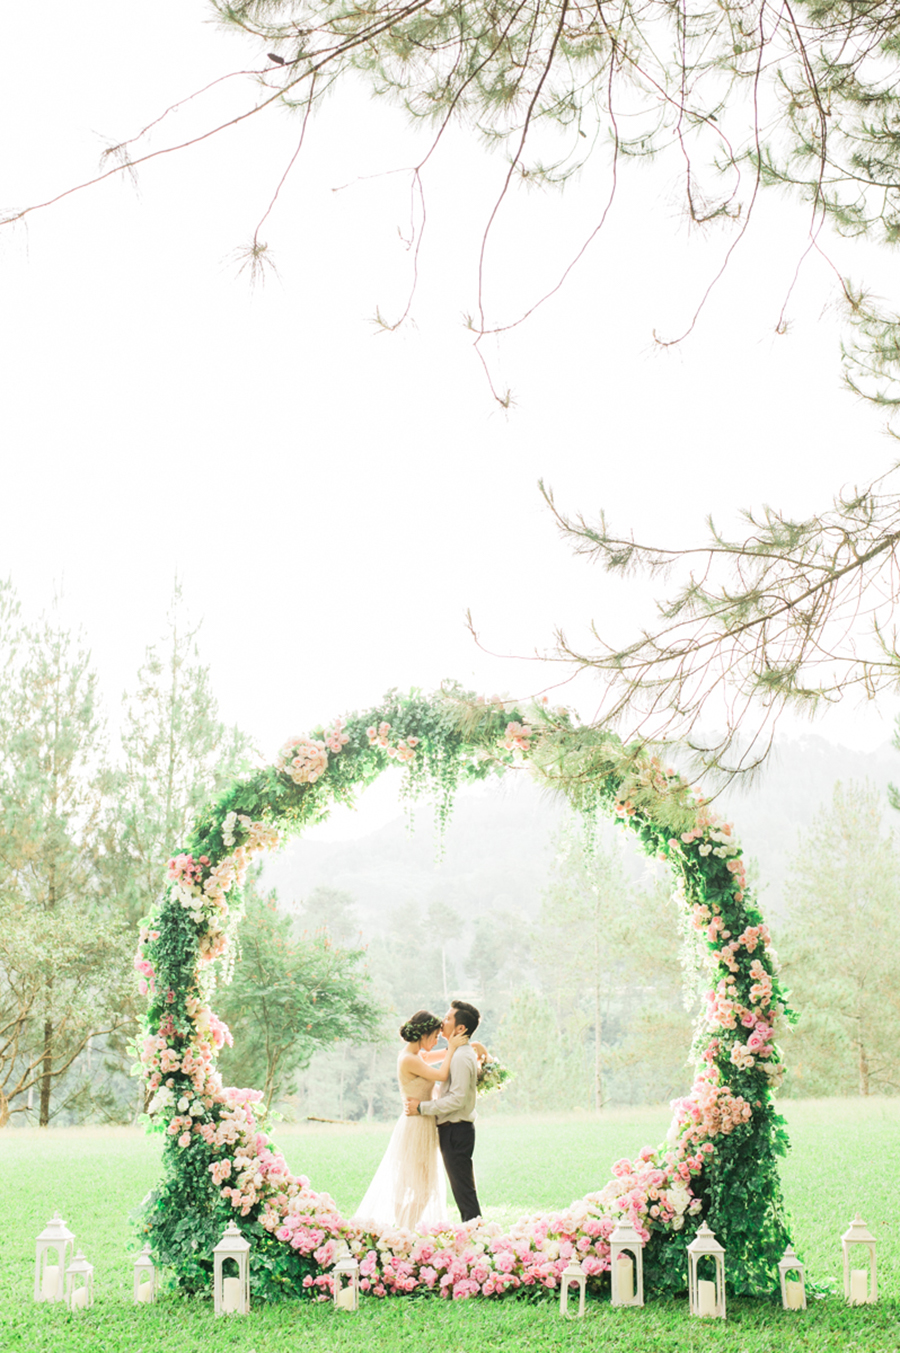 The wedding scoop dcor and flowers by trinity artwork bouquet by chloe florist photography by the wagyu story via gerry and devinas engagement with a giant floral wreath junglespirit Choice Image